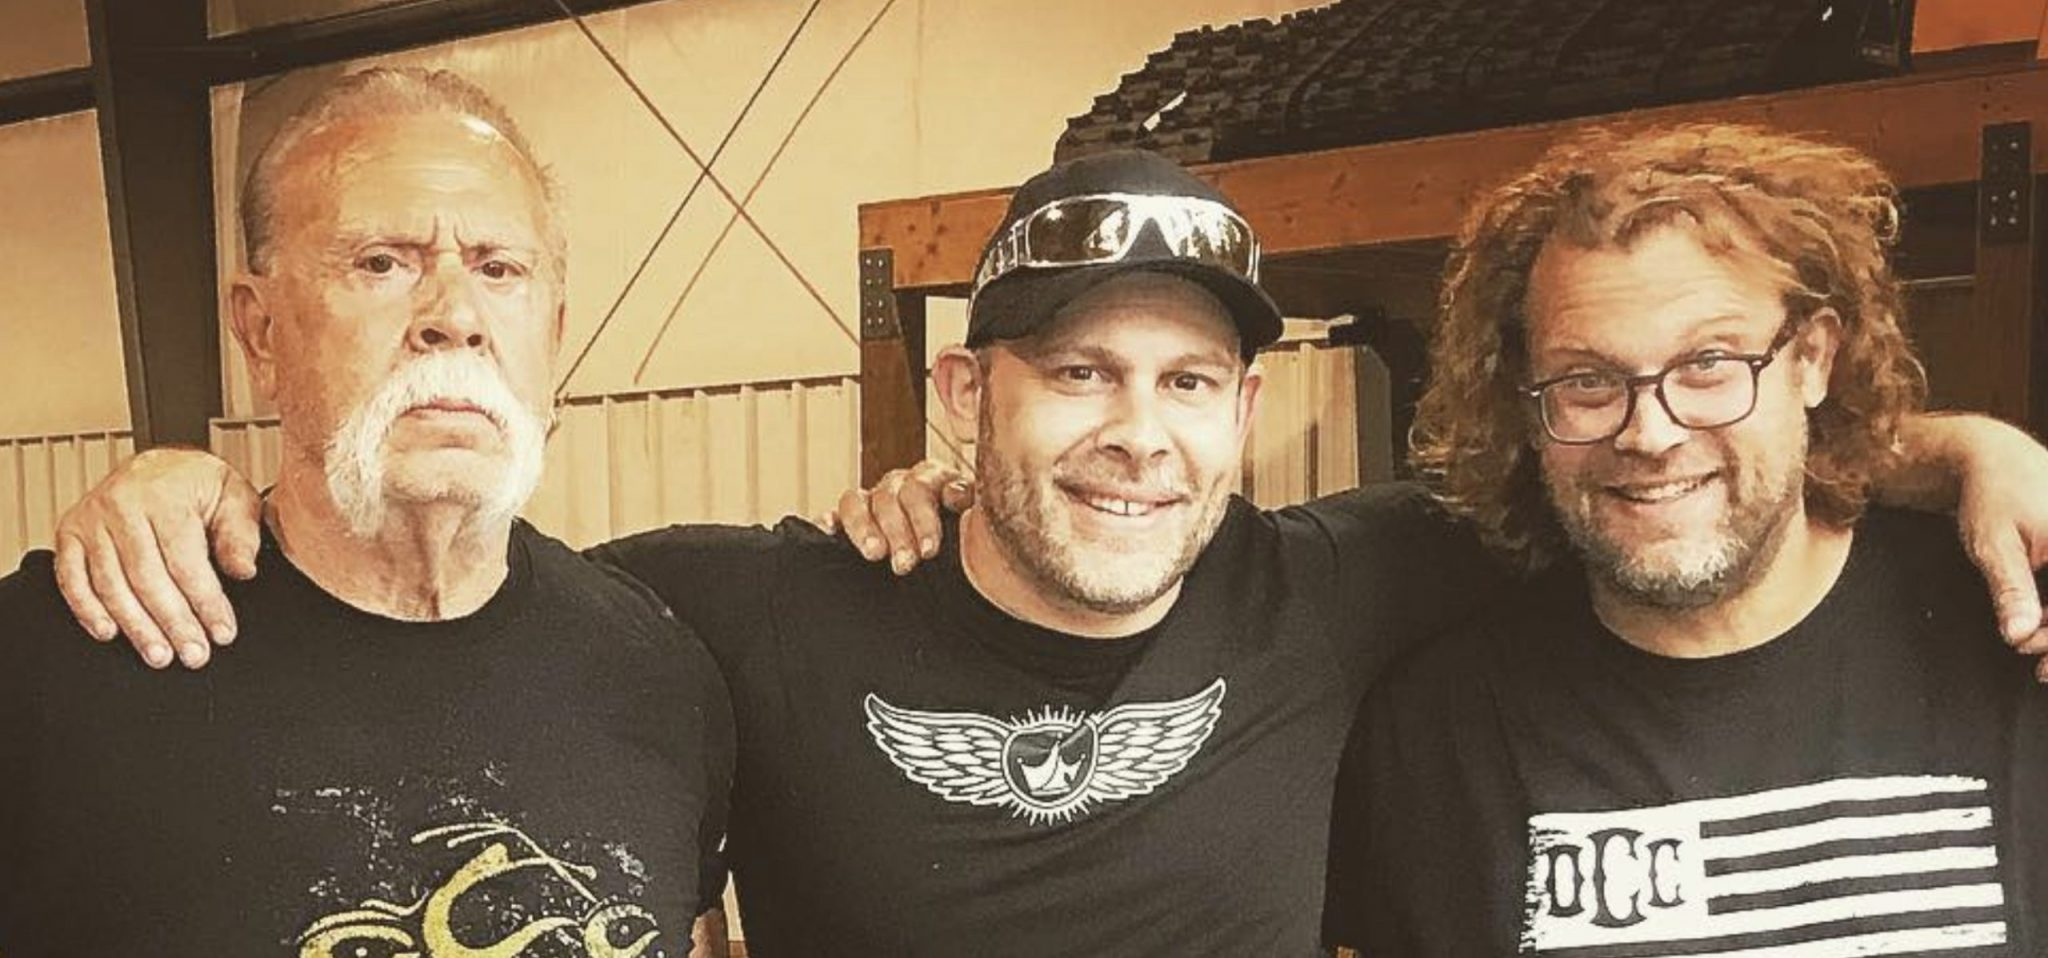 American Chopper, The Last Ride, Paul Teutul Jr, Paul Teutul Sr, Mikey Teutul, Discovery-https://www.instagram.com/p/BocYEScHOix/